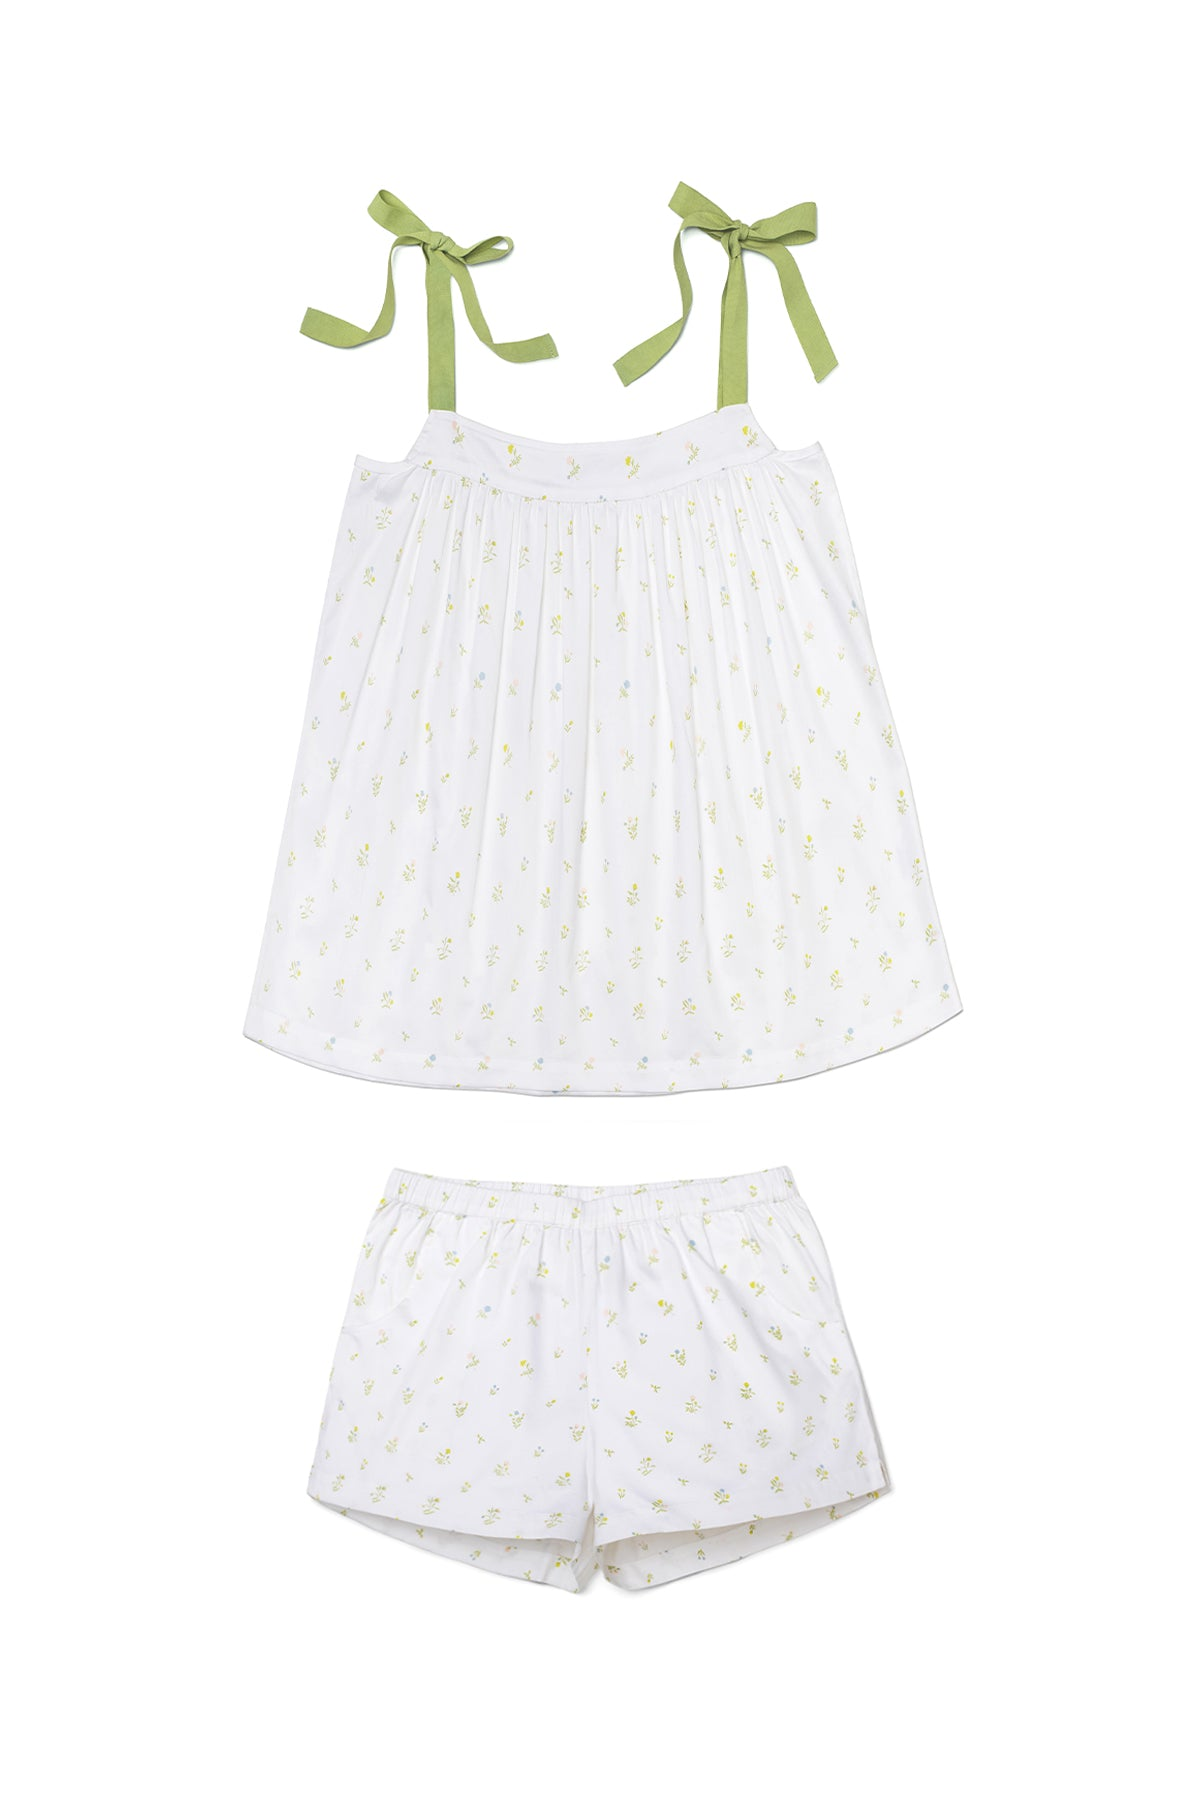 JB x LAKE Day Shorts Set in Garden Bloom